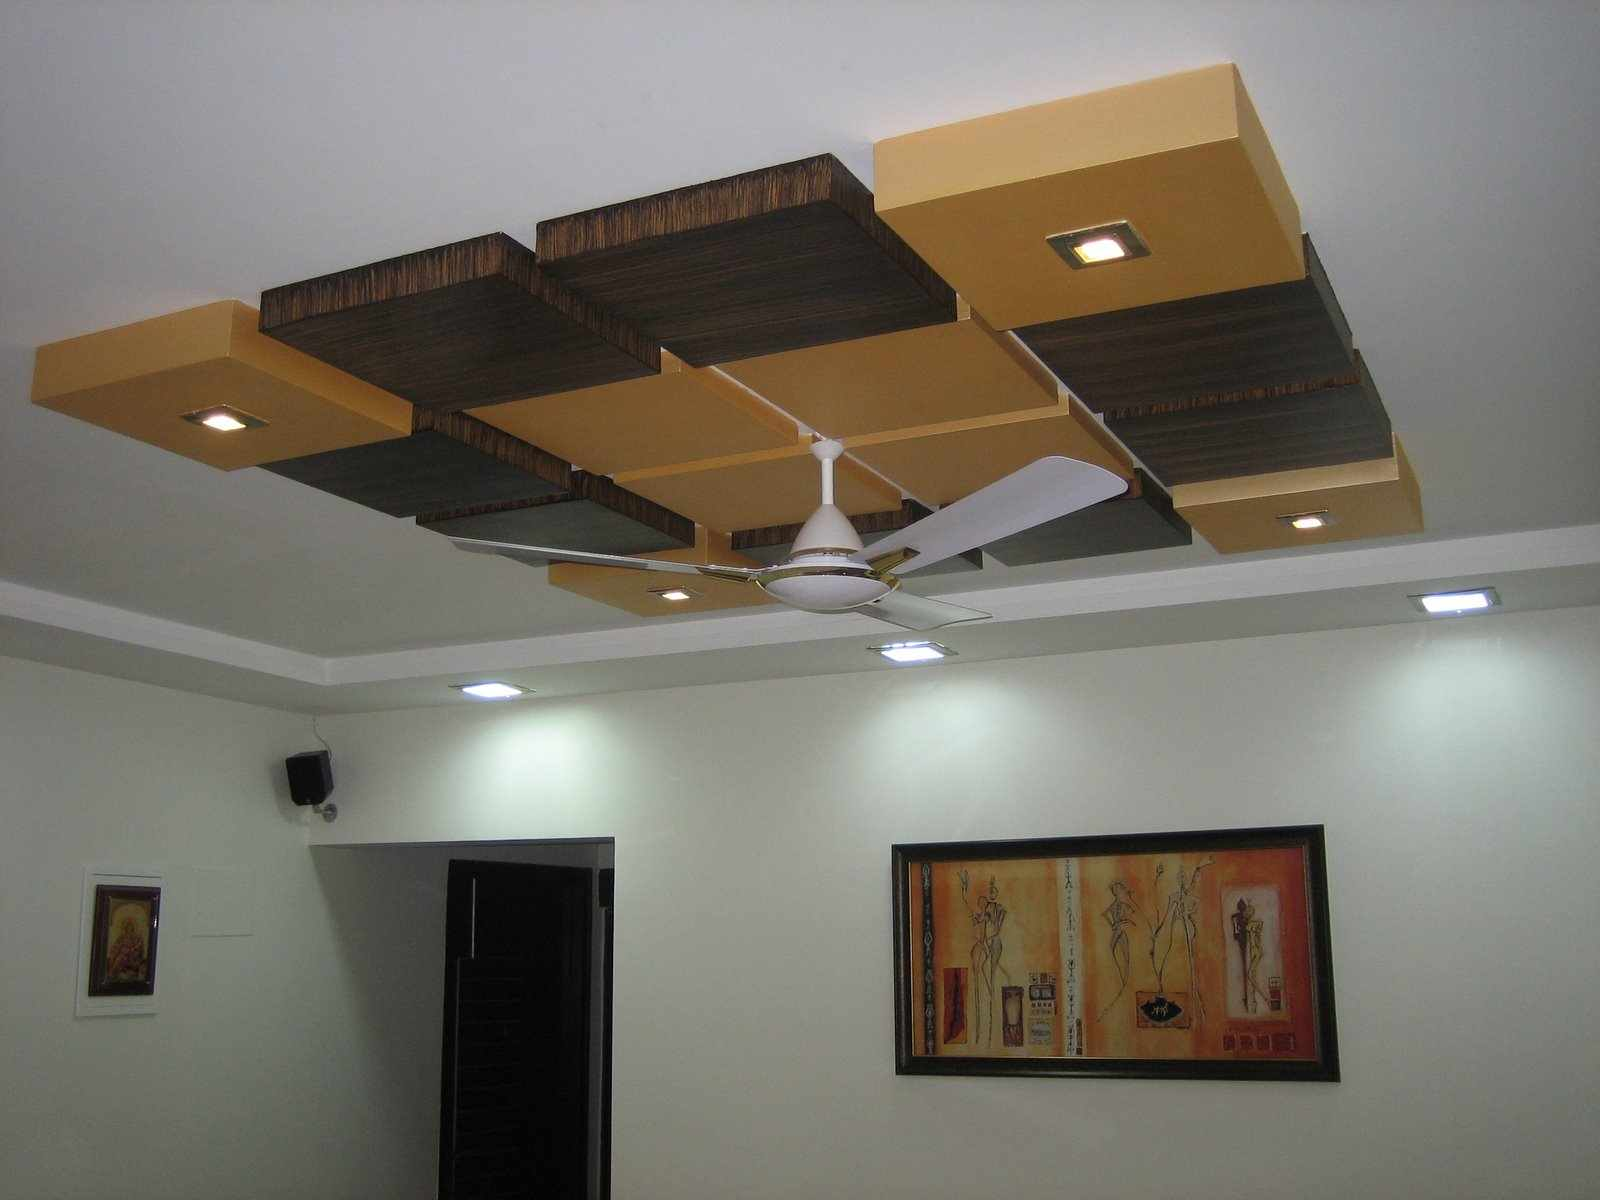 Modern pop false ceiling designs for bedroom interior 2014 - Wall ceiling designs for home ...